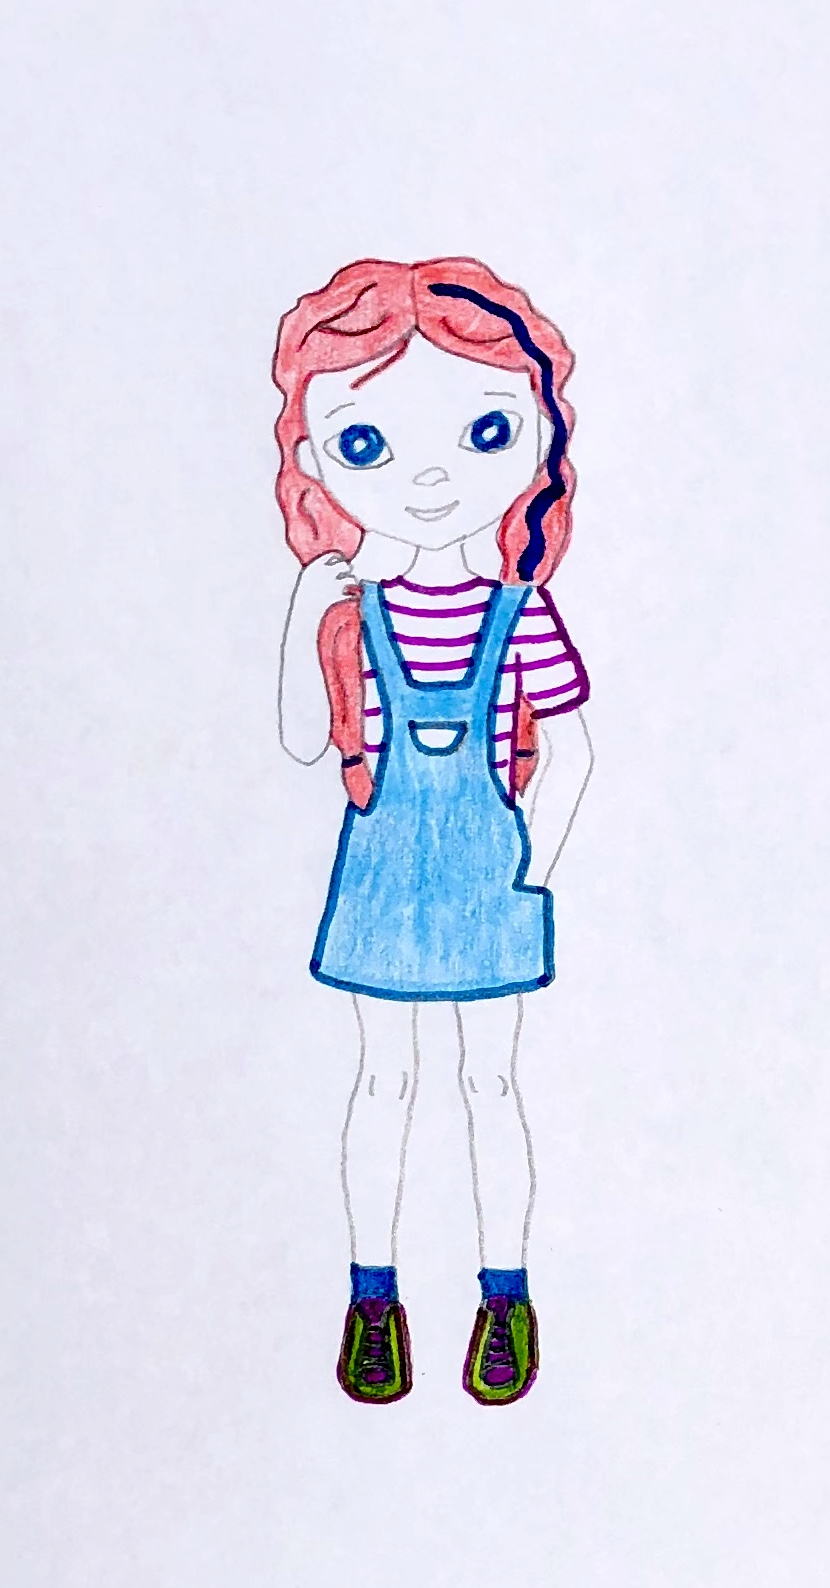 Drawing of a red headed girl, Wendy Willows, from the mystery story for kids, The Case of the Wasted Water.